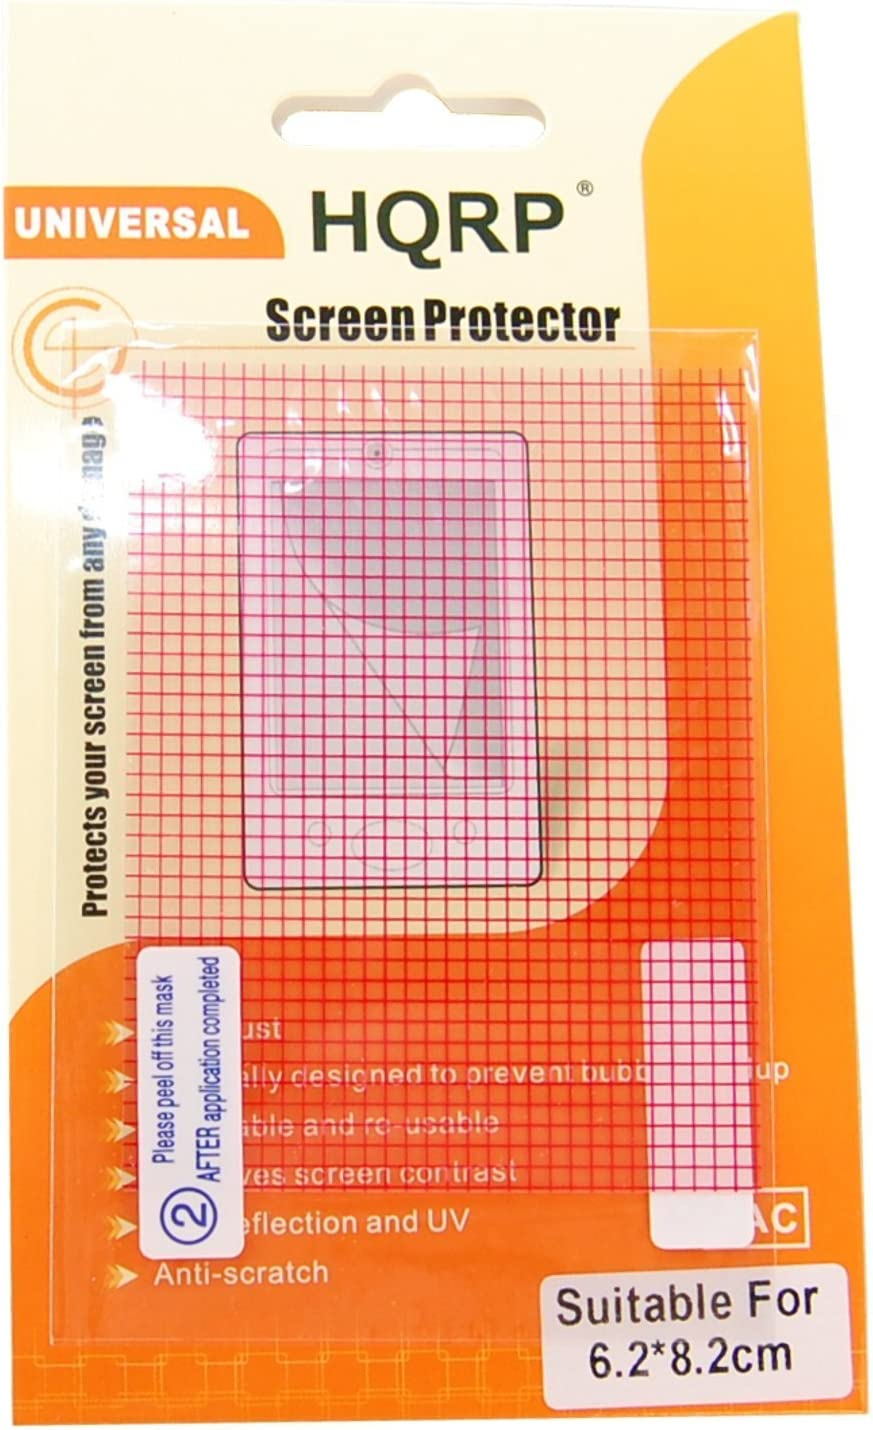 ZR900 ZR90 ZR950 Camcorder plus HQRP LCD Screen Protector HQRP IEEE 1394 4pin to 4pin Cable//Cord compatible with Canon ZR850 ZR930